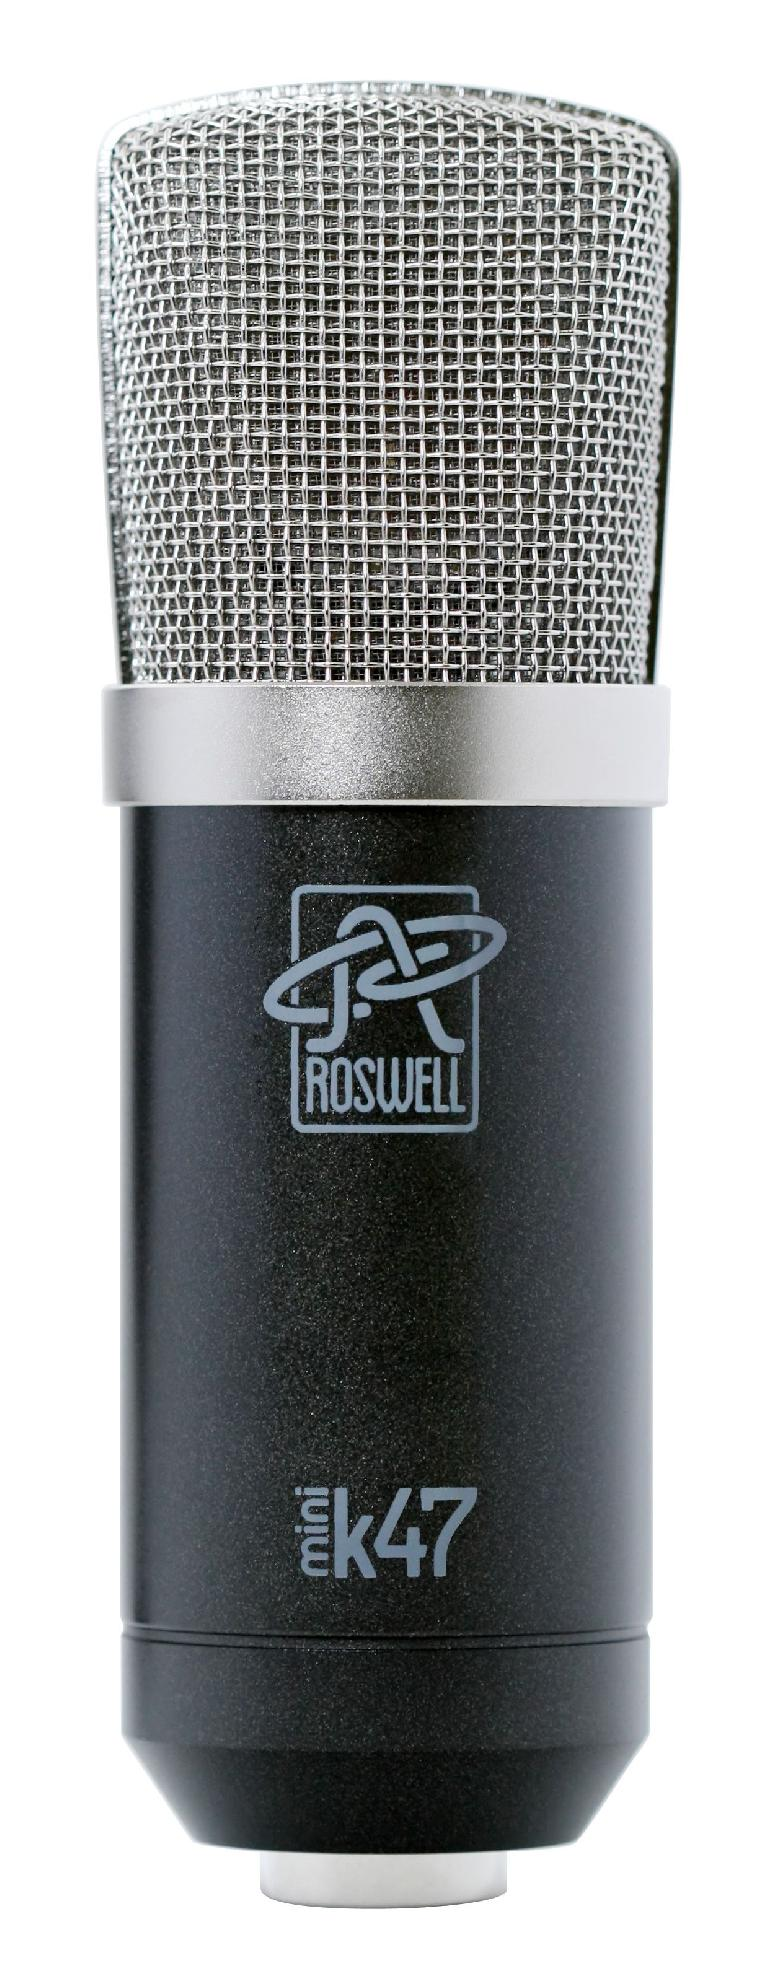 Roswell Pro Audio Mini K47 microphone.